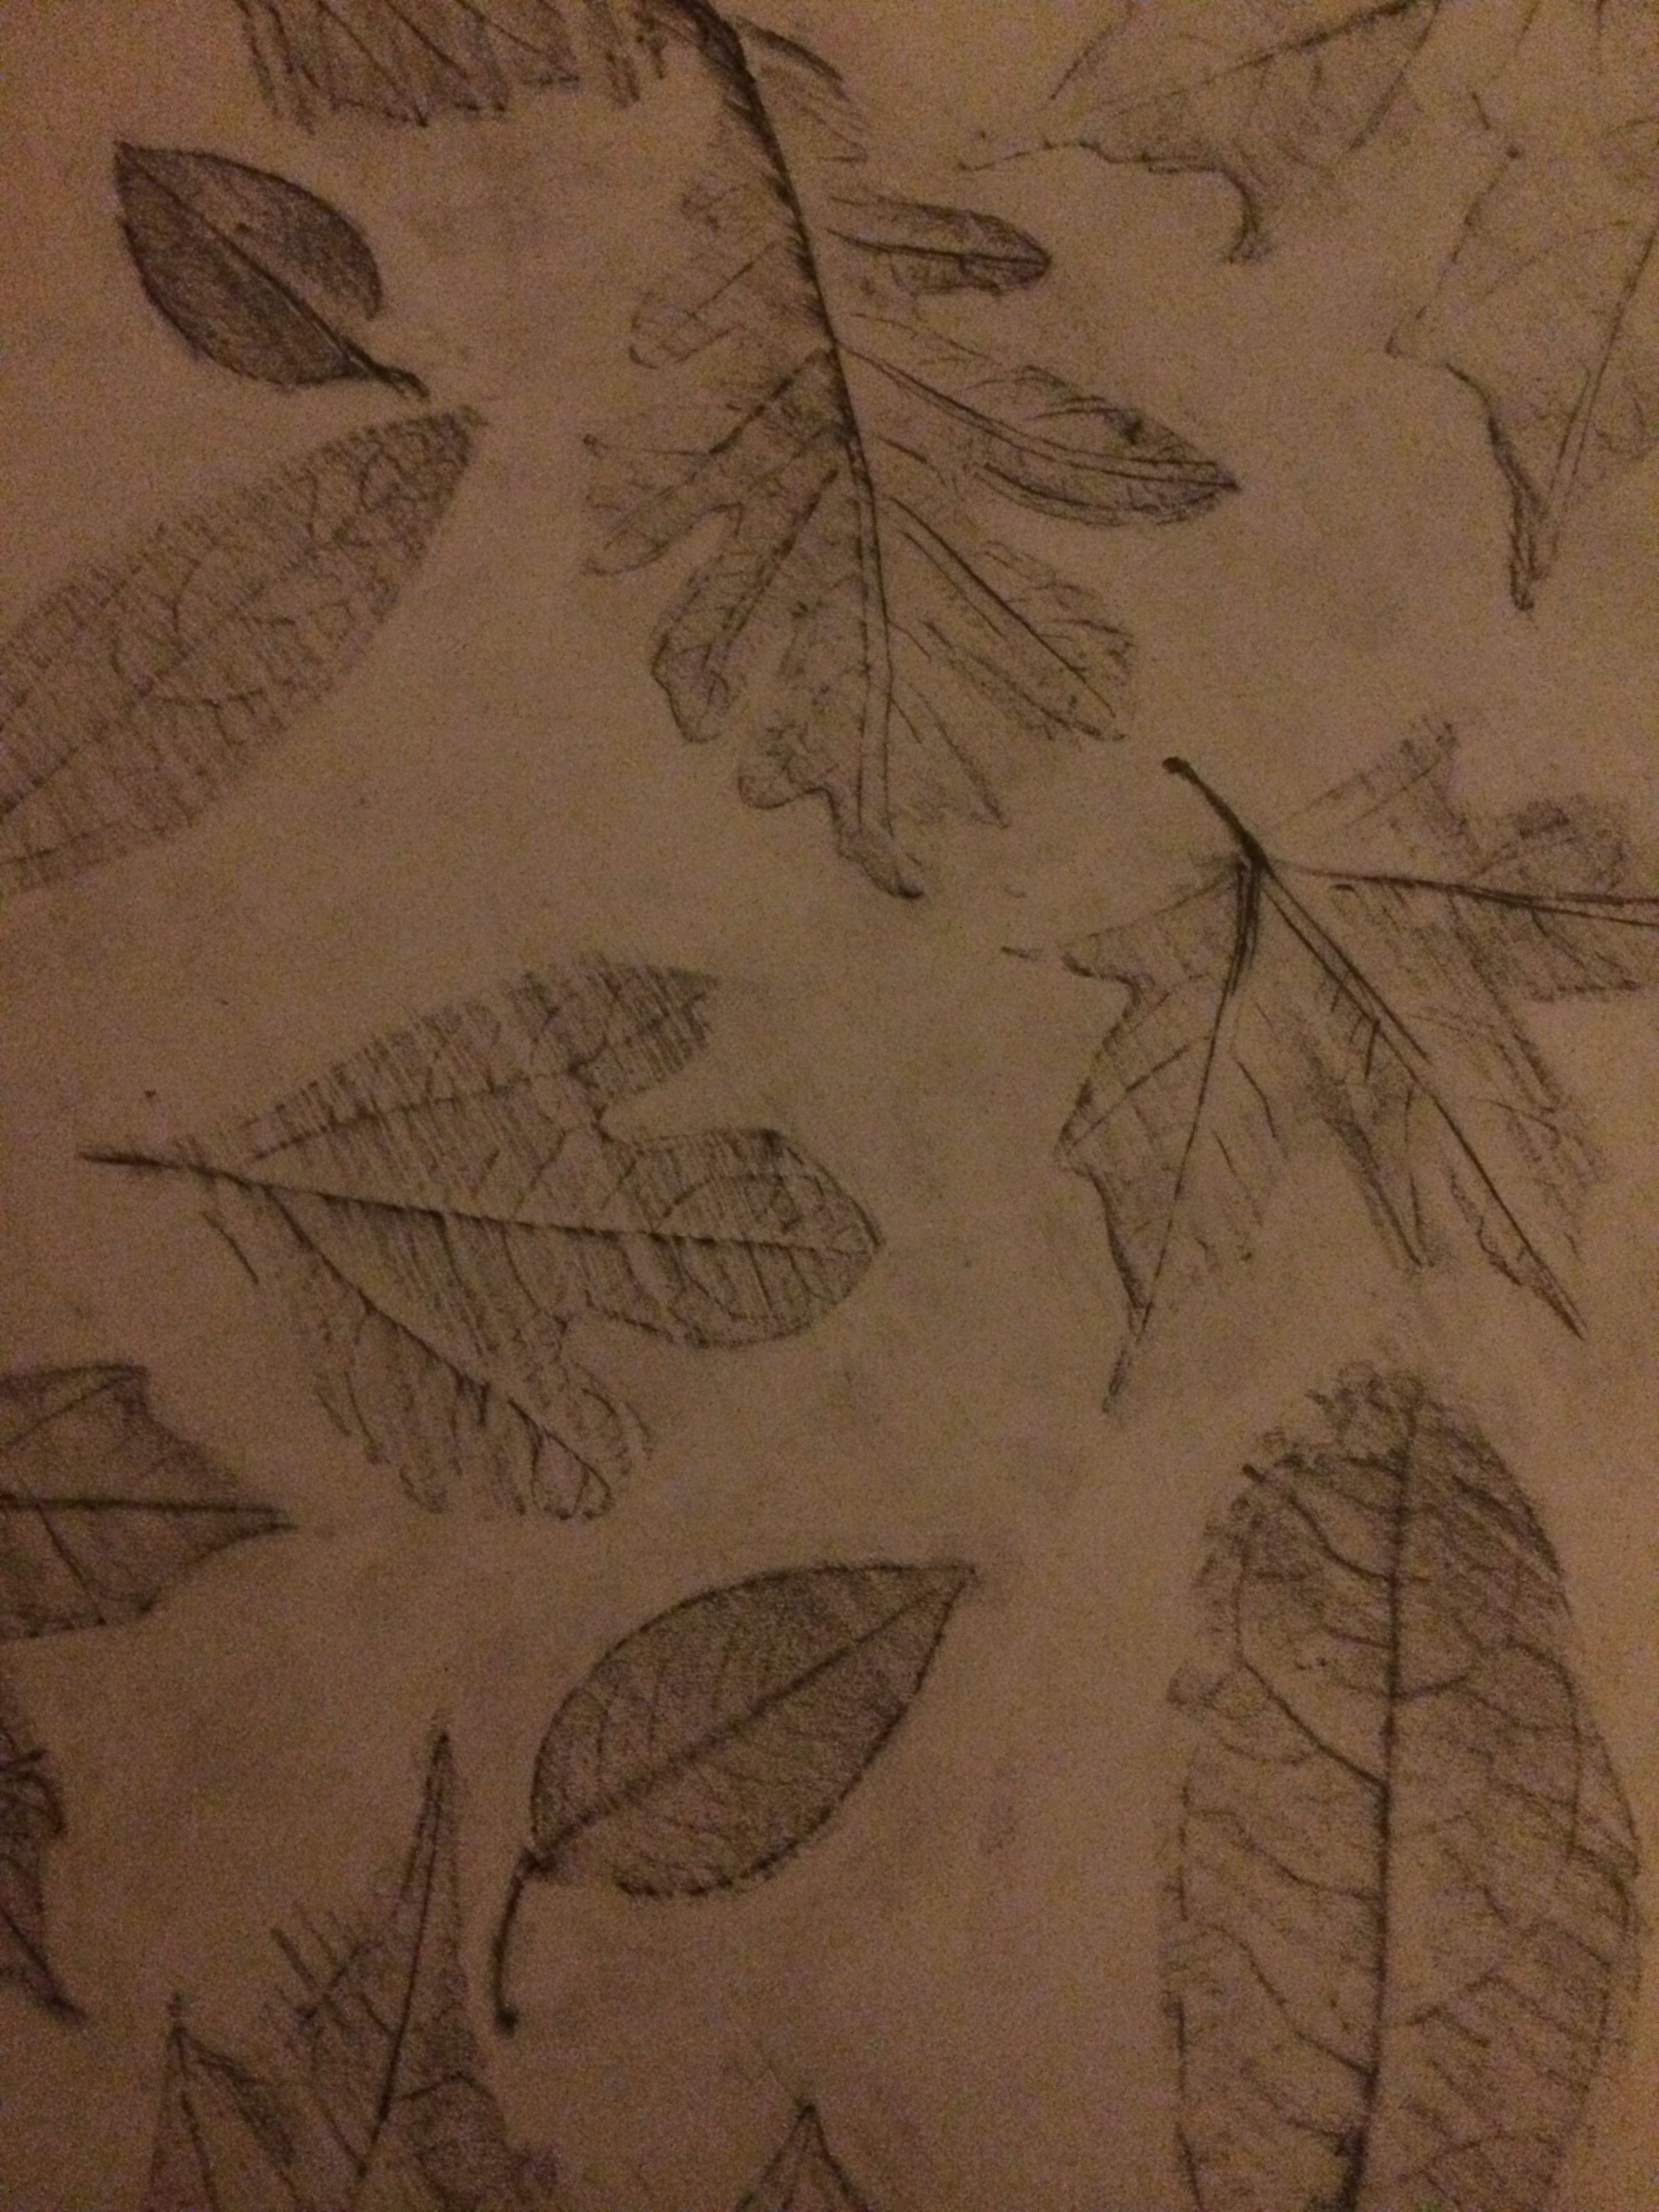 Take leaves and place under paper. Take pencil over top of the paper and color over the leaf image underneath. A penciled leaf will appear. Erase extra lead on paper to leave a beautiful masterpiece.